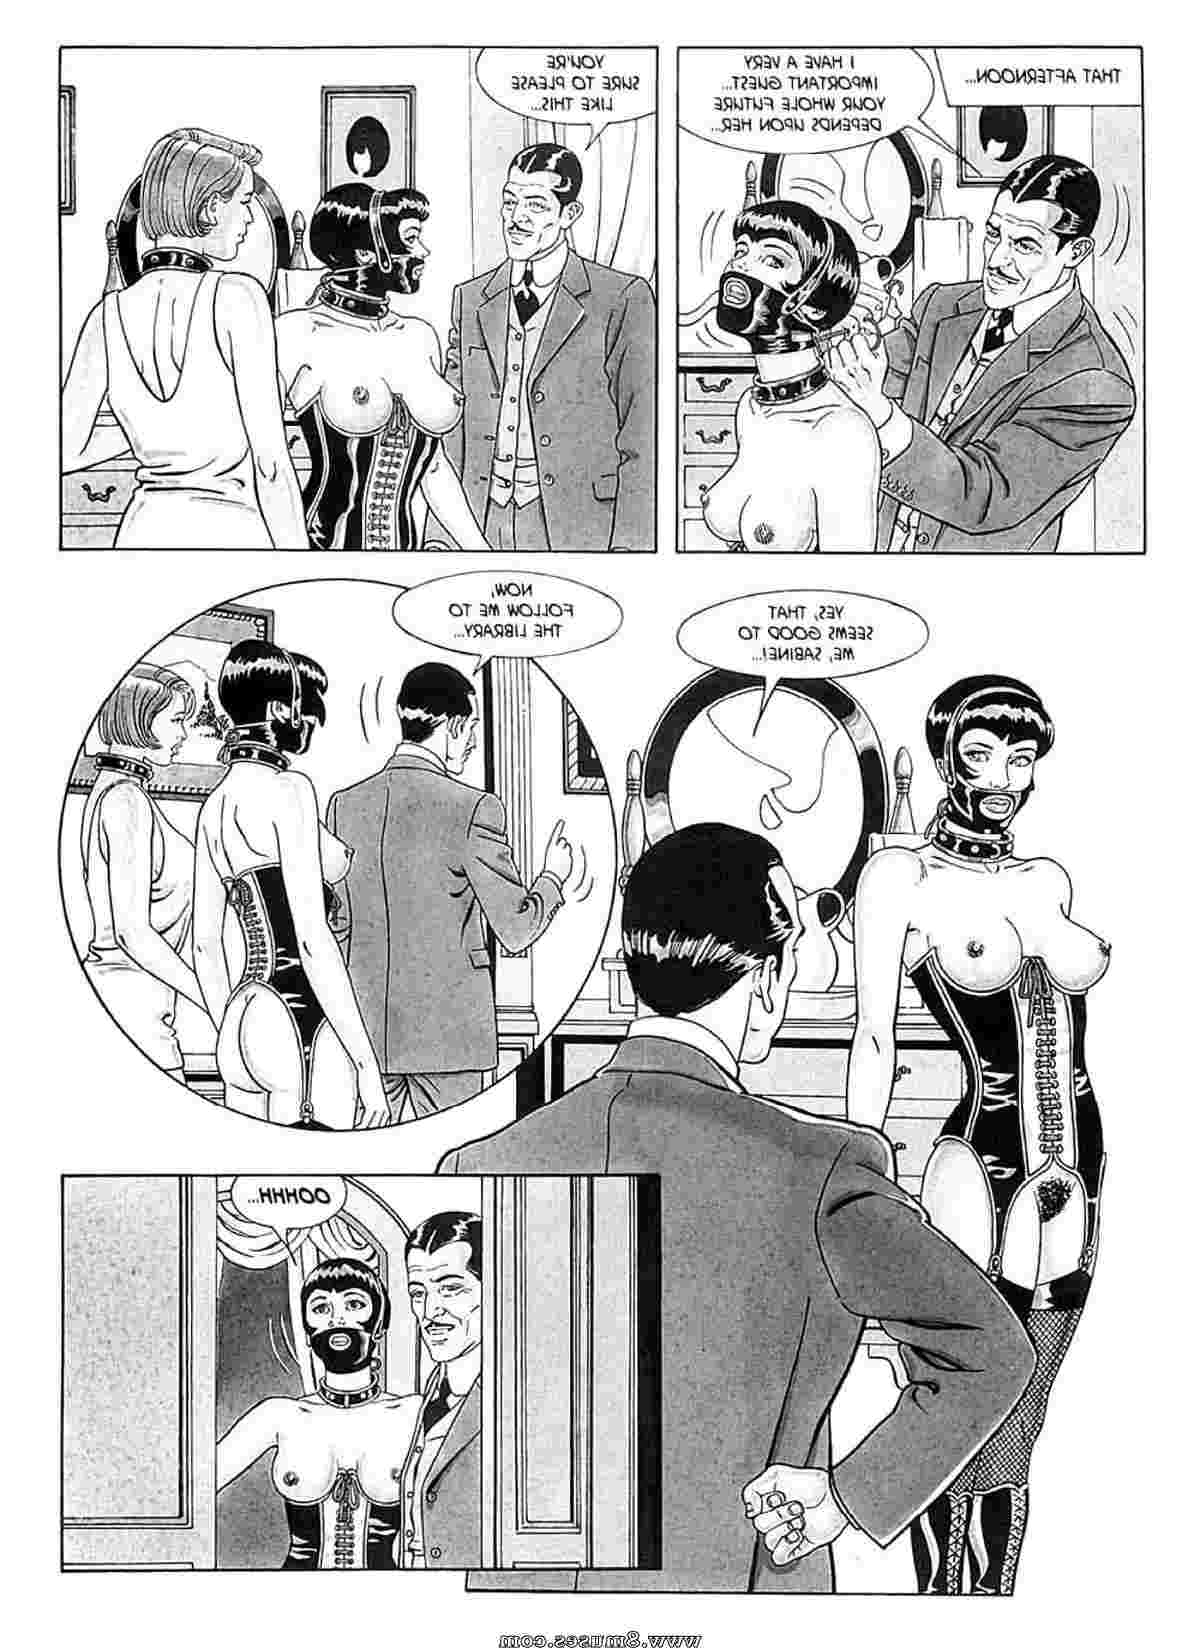 Stramaglia-Morale-Comics/Education-Anglaise Education_Anglaise__8muses_-_Sex_and_Porn_Comics_19.jpg